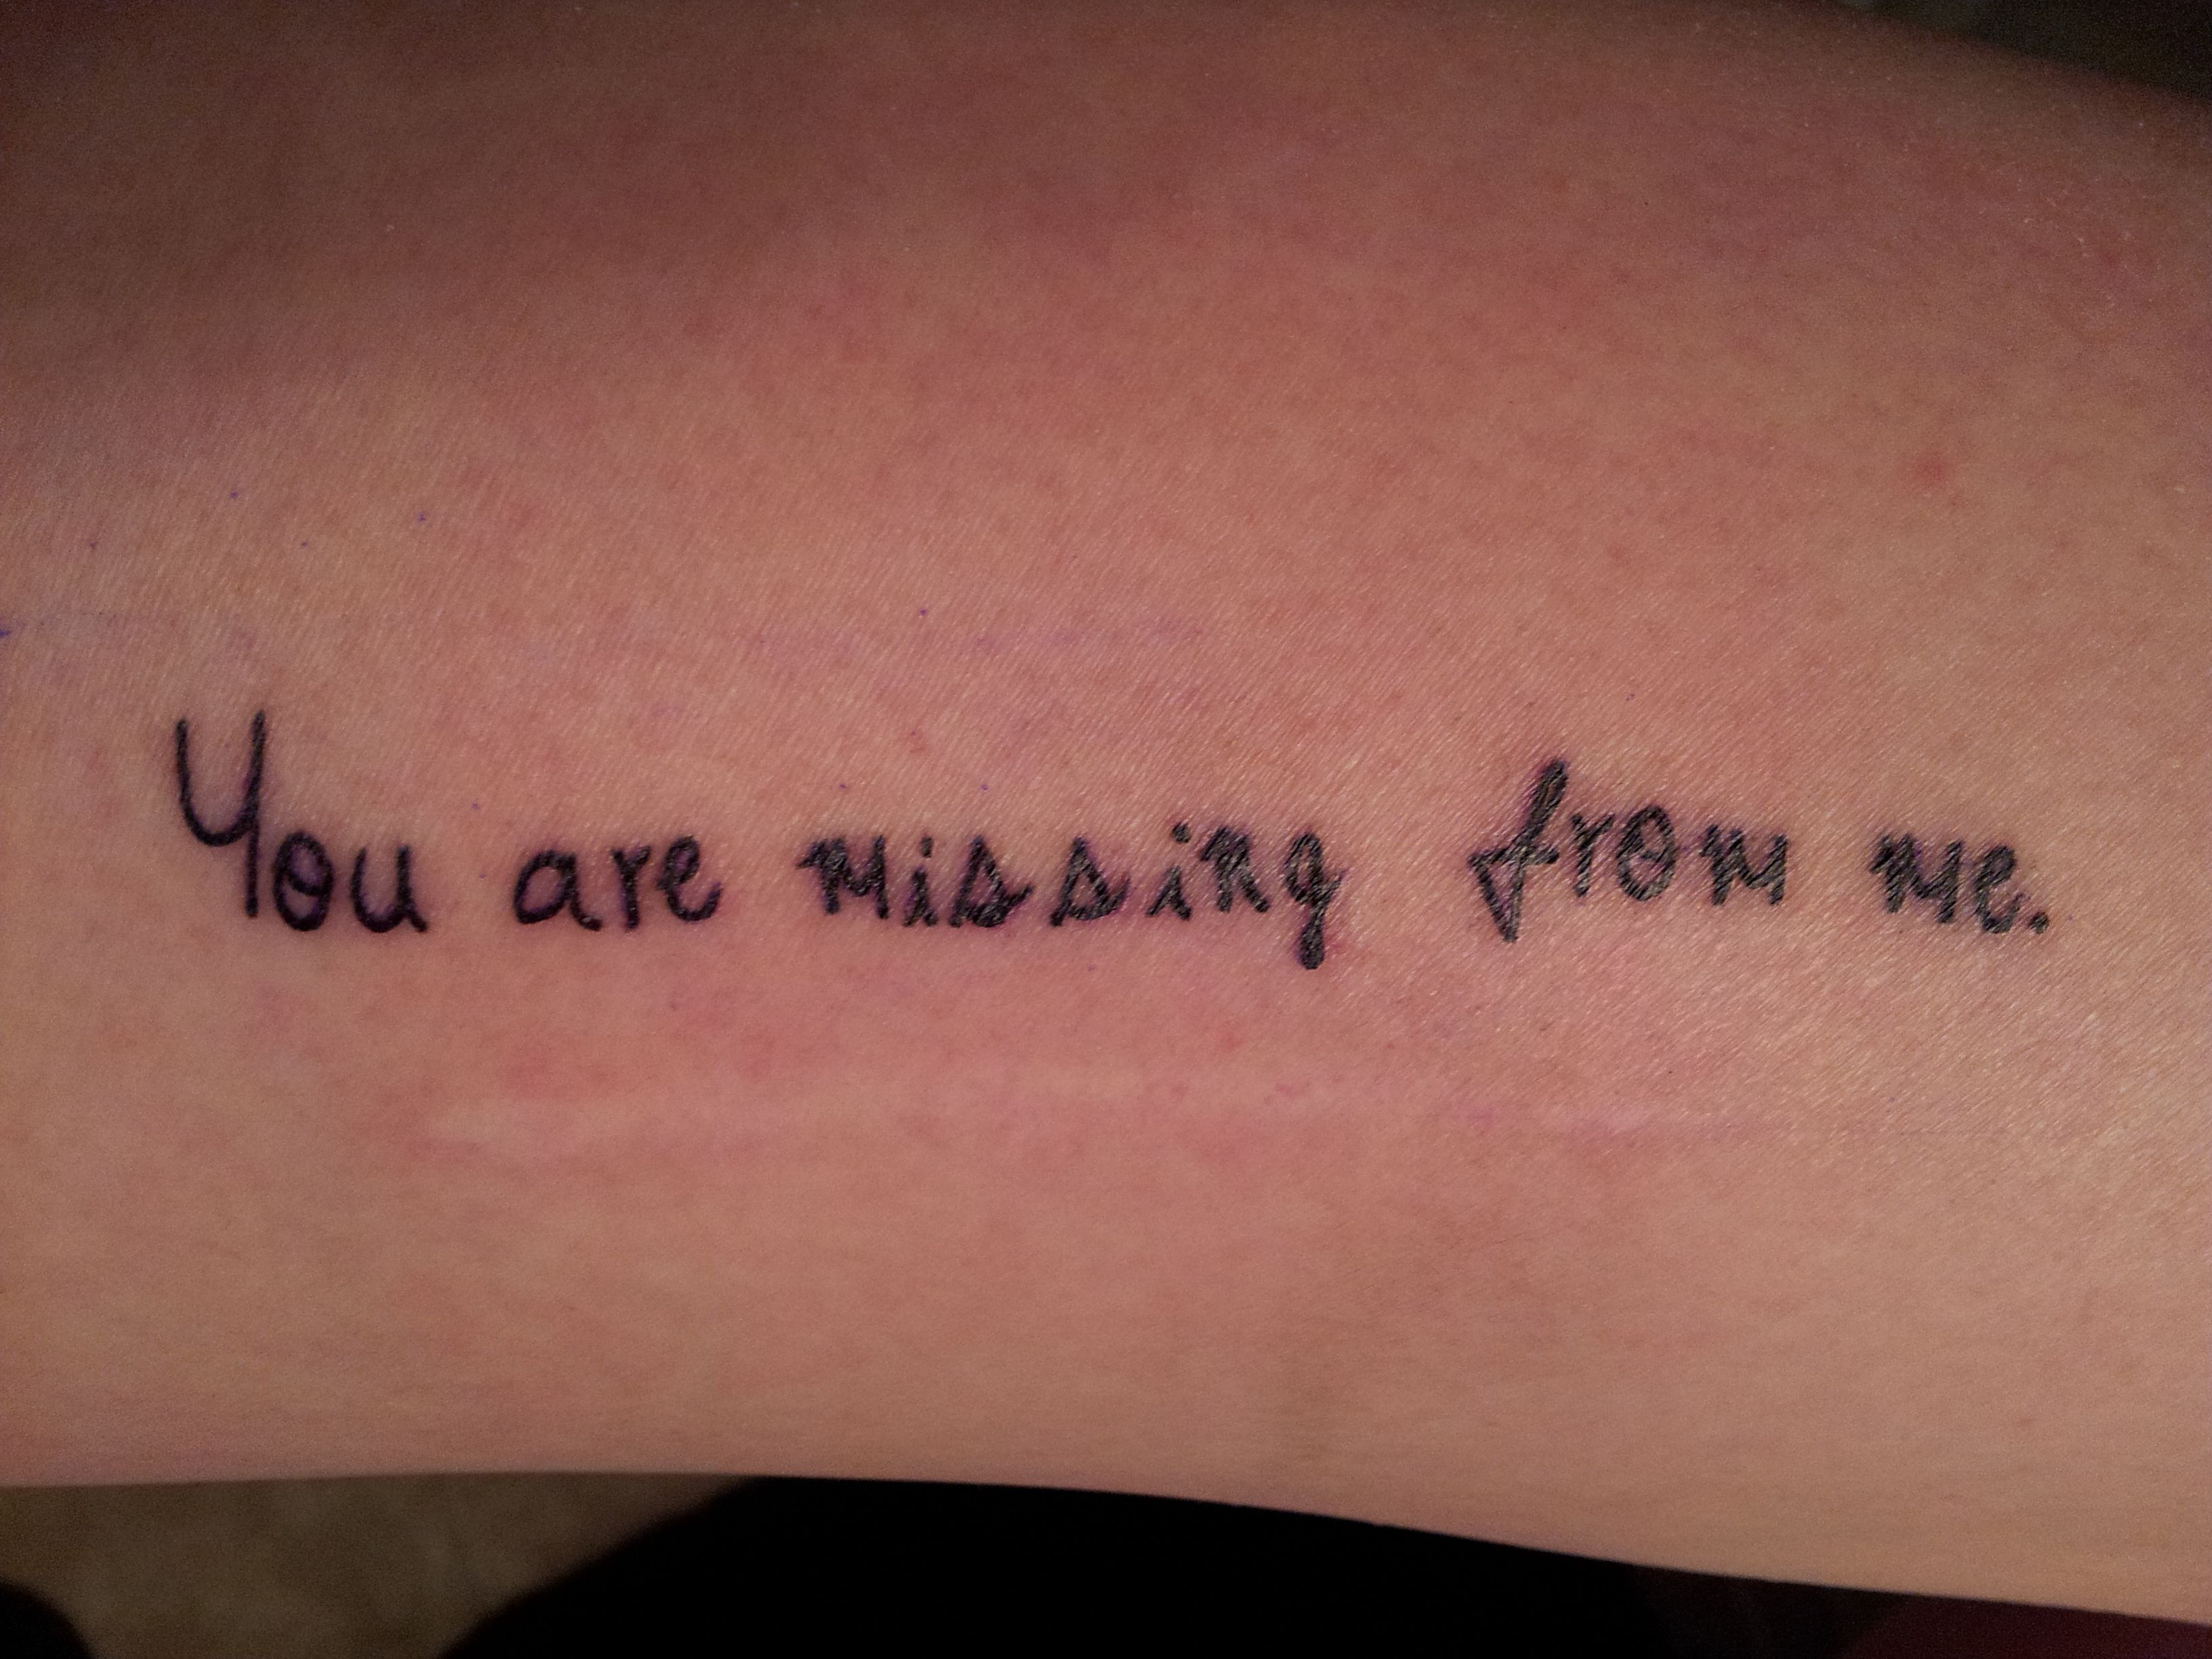 Duchenne Muscular Dystrophy Quotes Quotyou Are Missing From Me Quot Tattooed Above My Muscle Biopsy